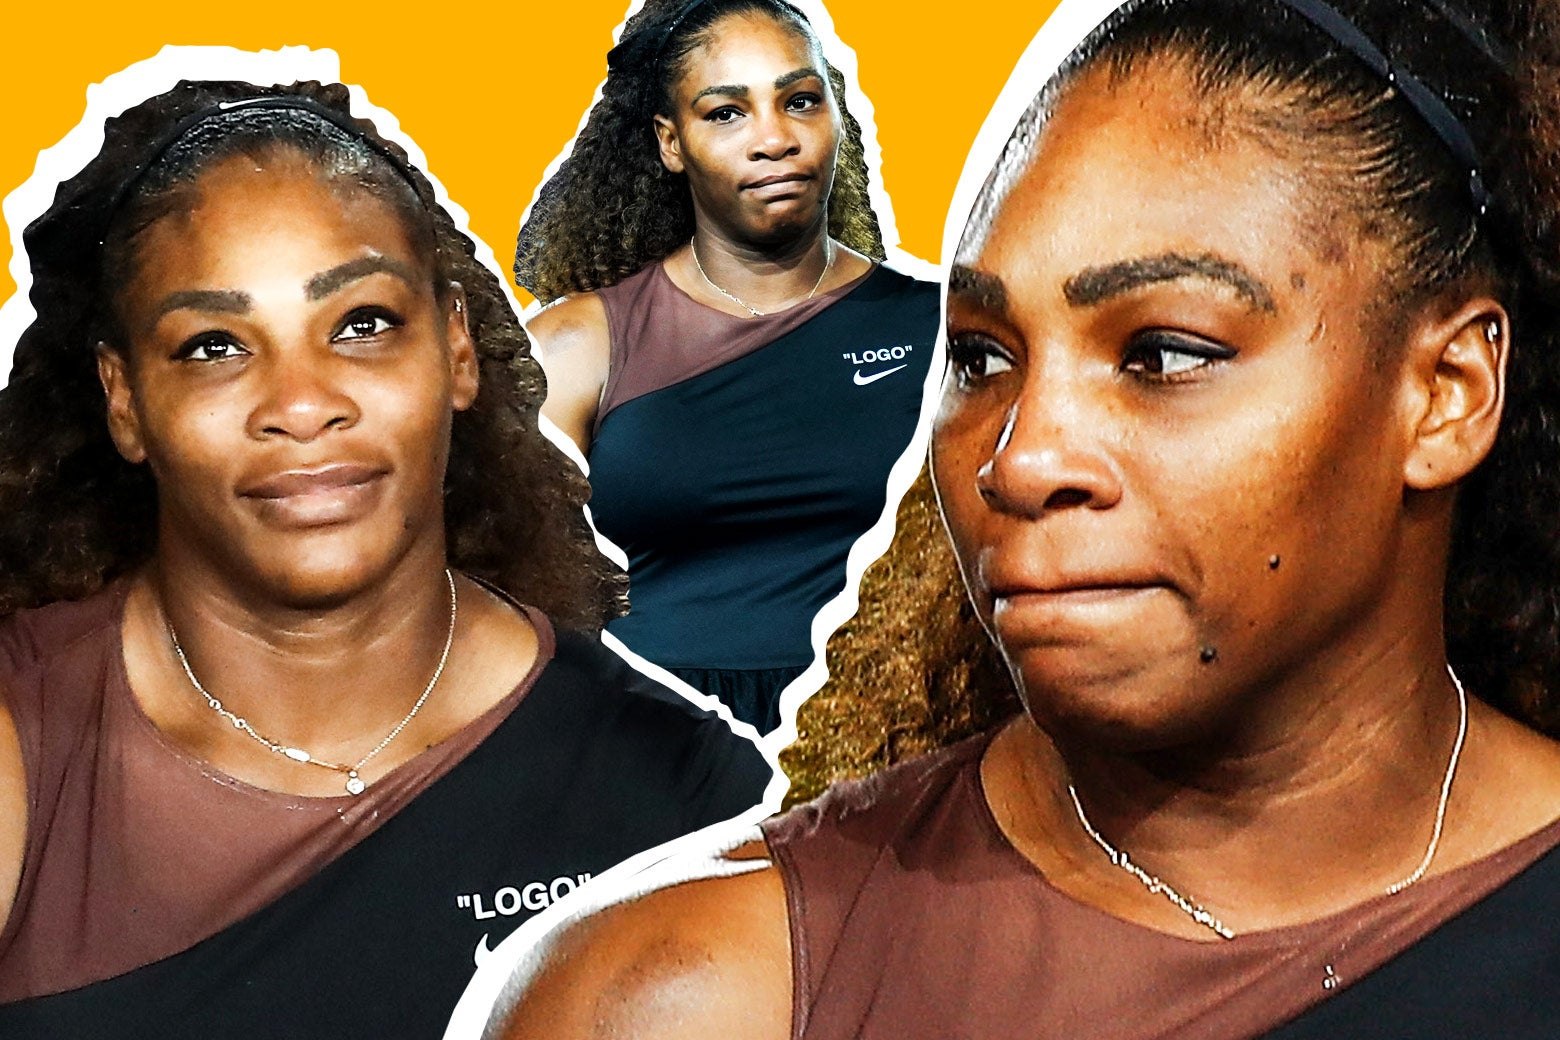 Serena Williams looking frustrated.